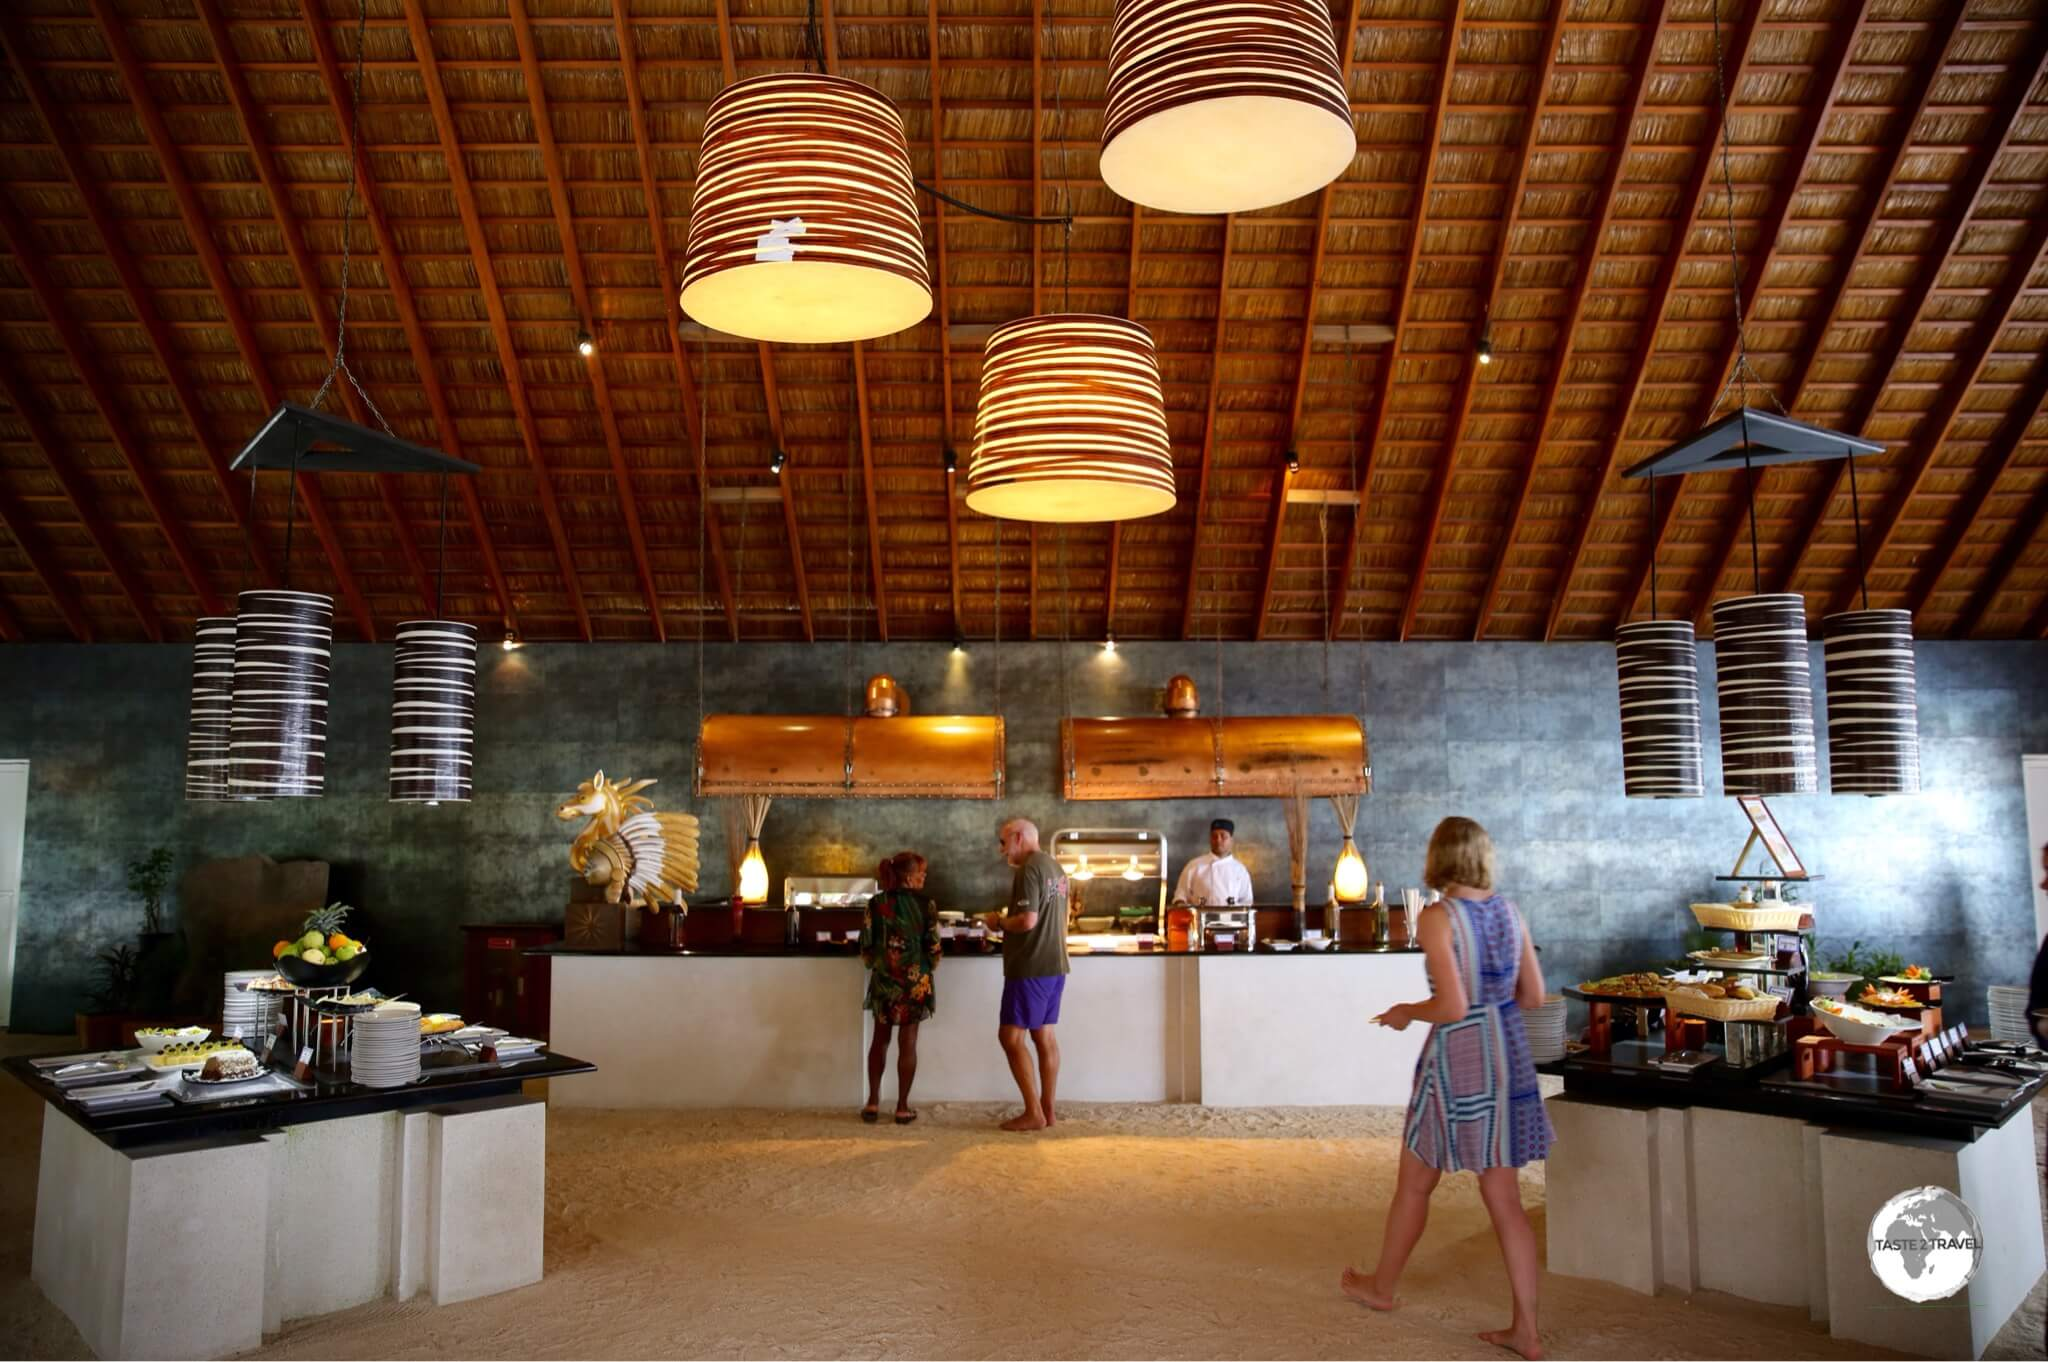 One of the two buffet restaurants at Vilamendhoo resort.